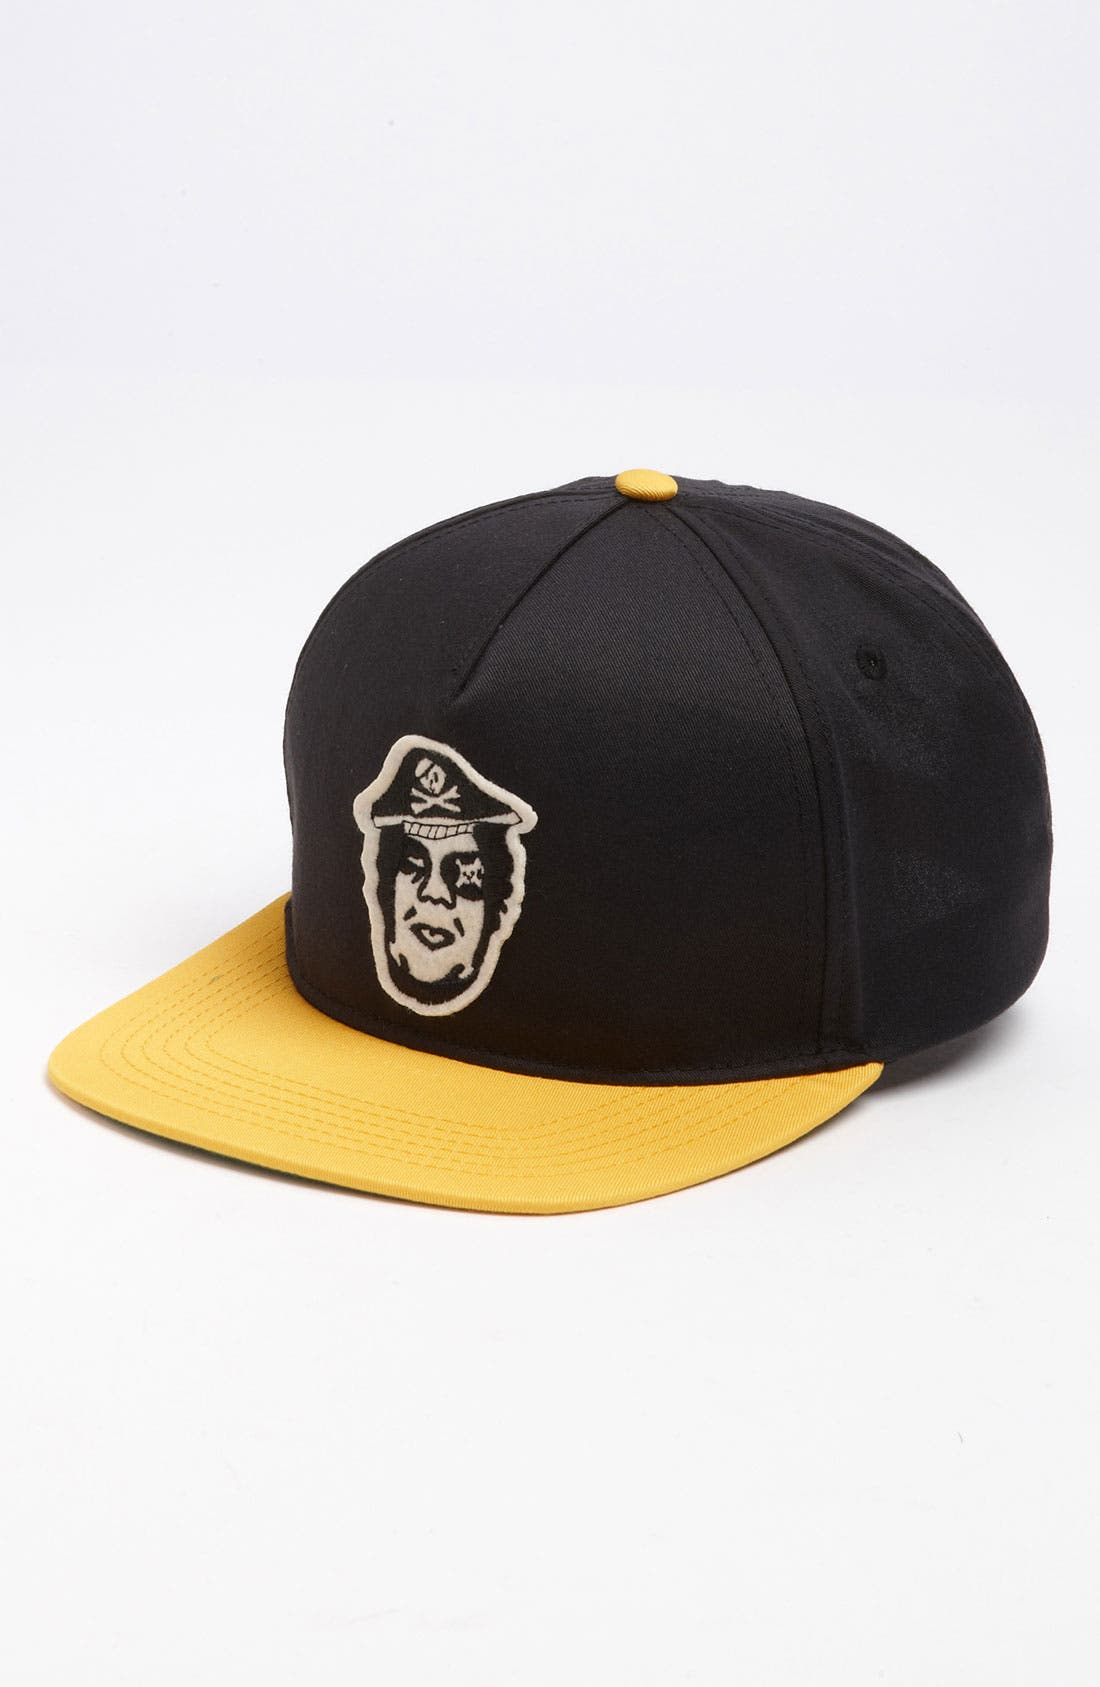 Alternate Image 1 Selected - Obey 'Avast!' Snapback Baseball Cap